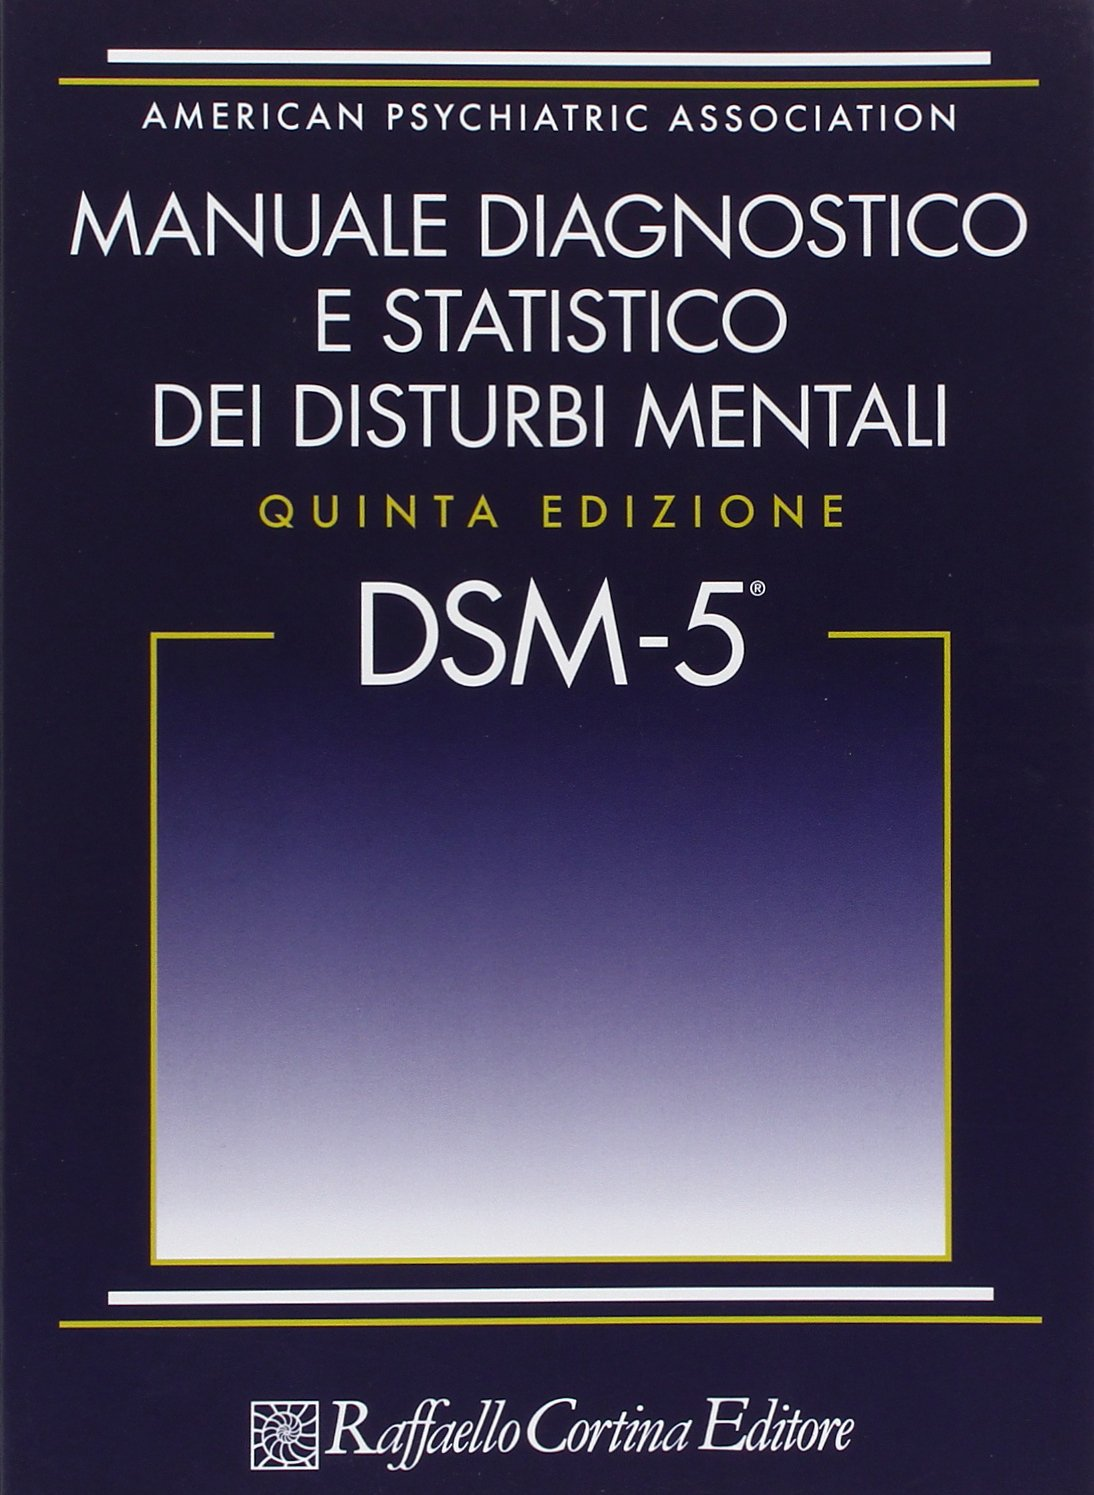 Download DSM-5. Manuale Diagnostico E Statistico Dei Disturbi Mentali 